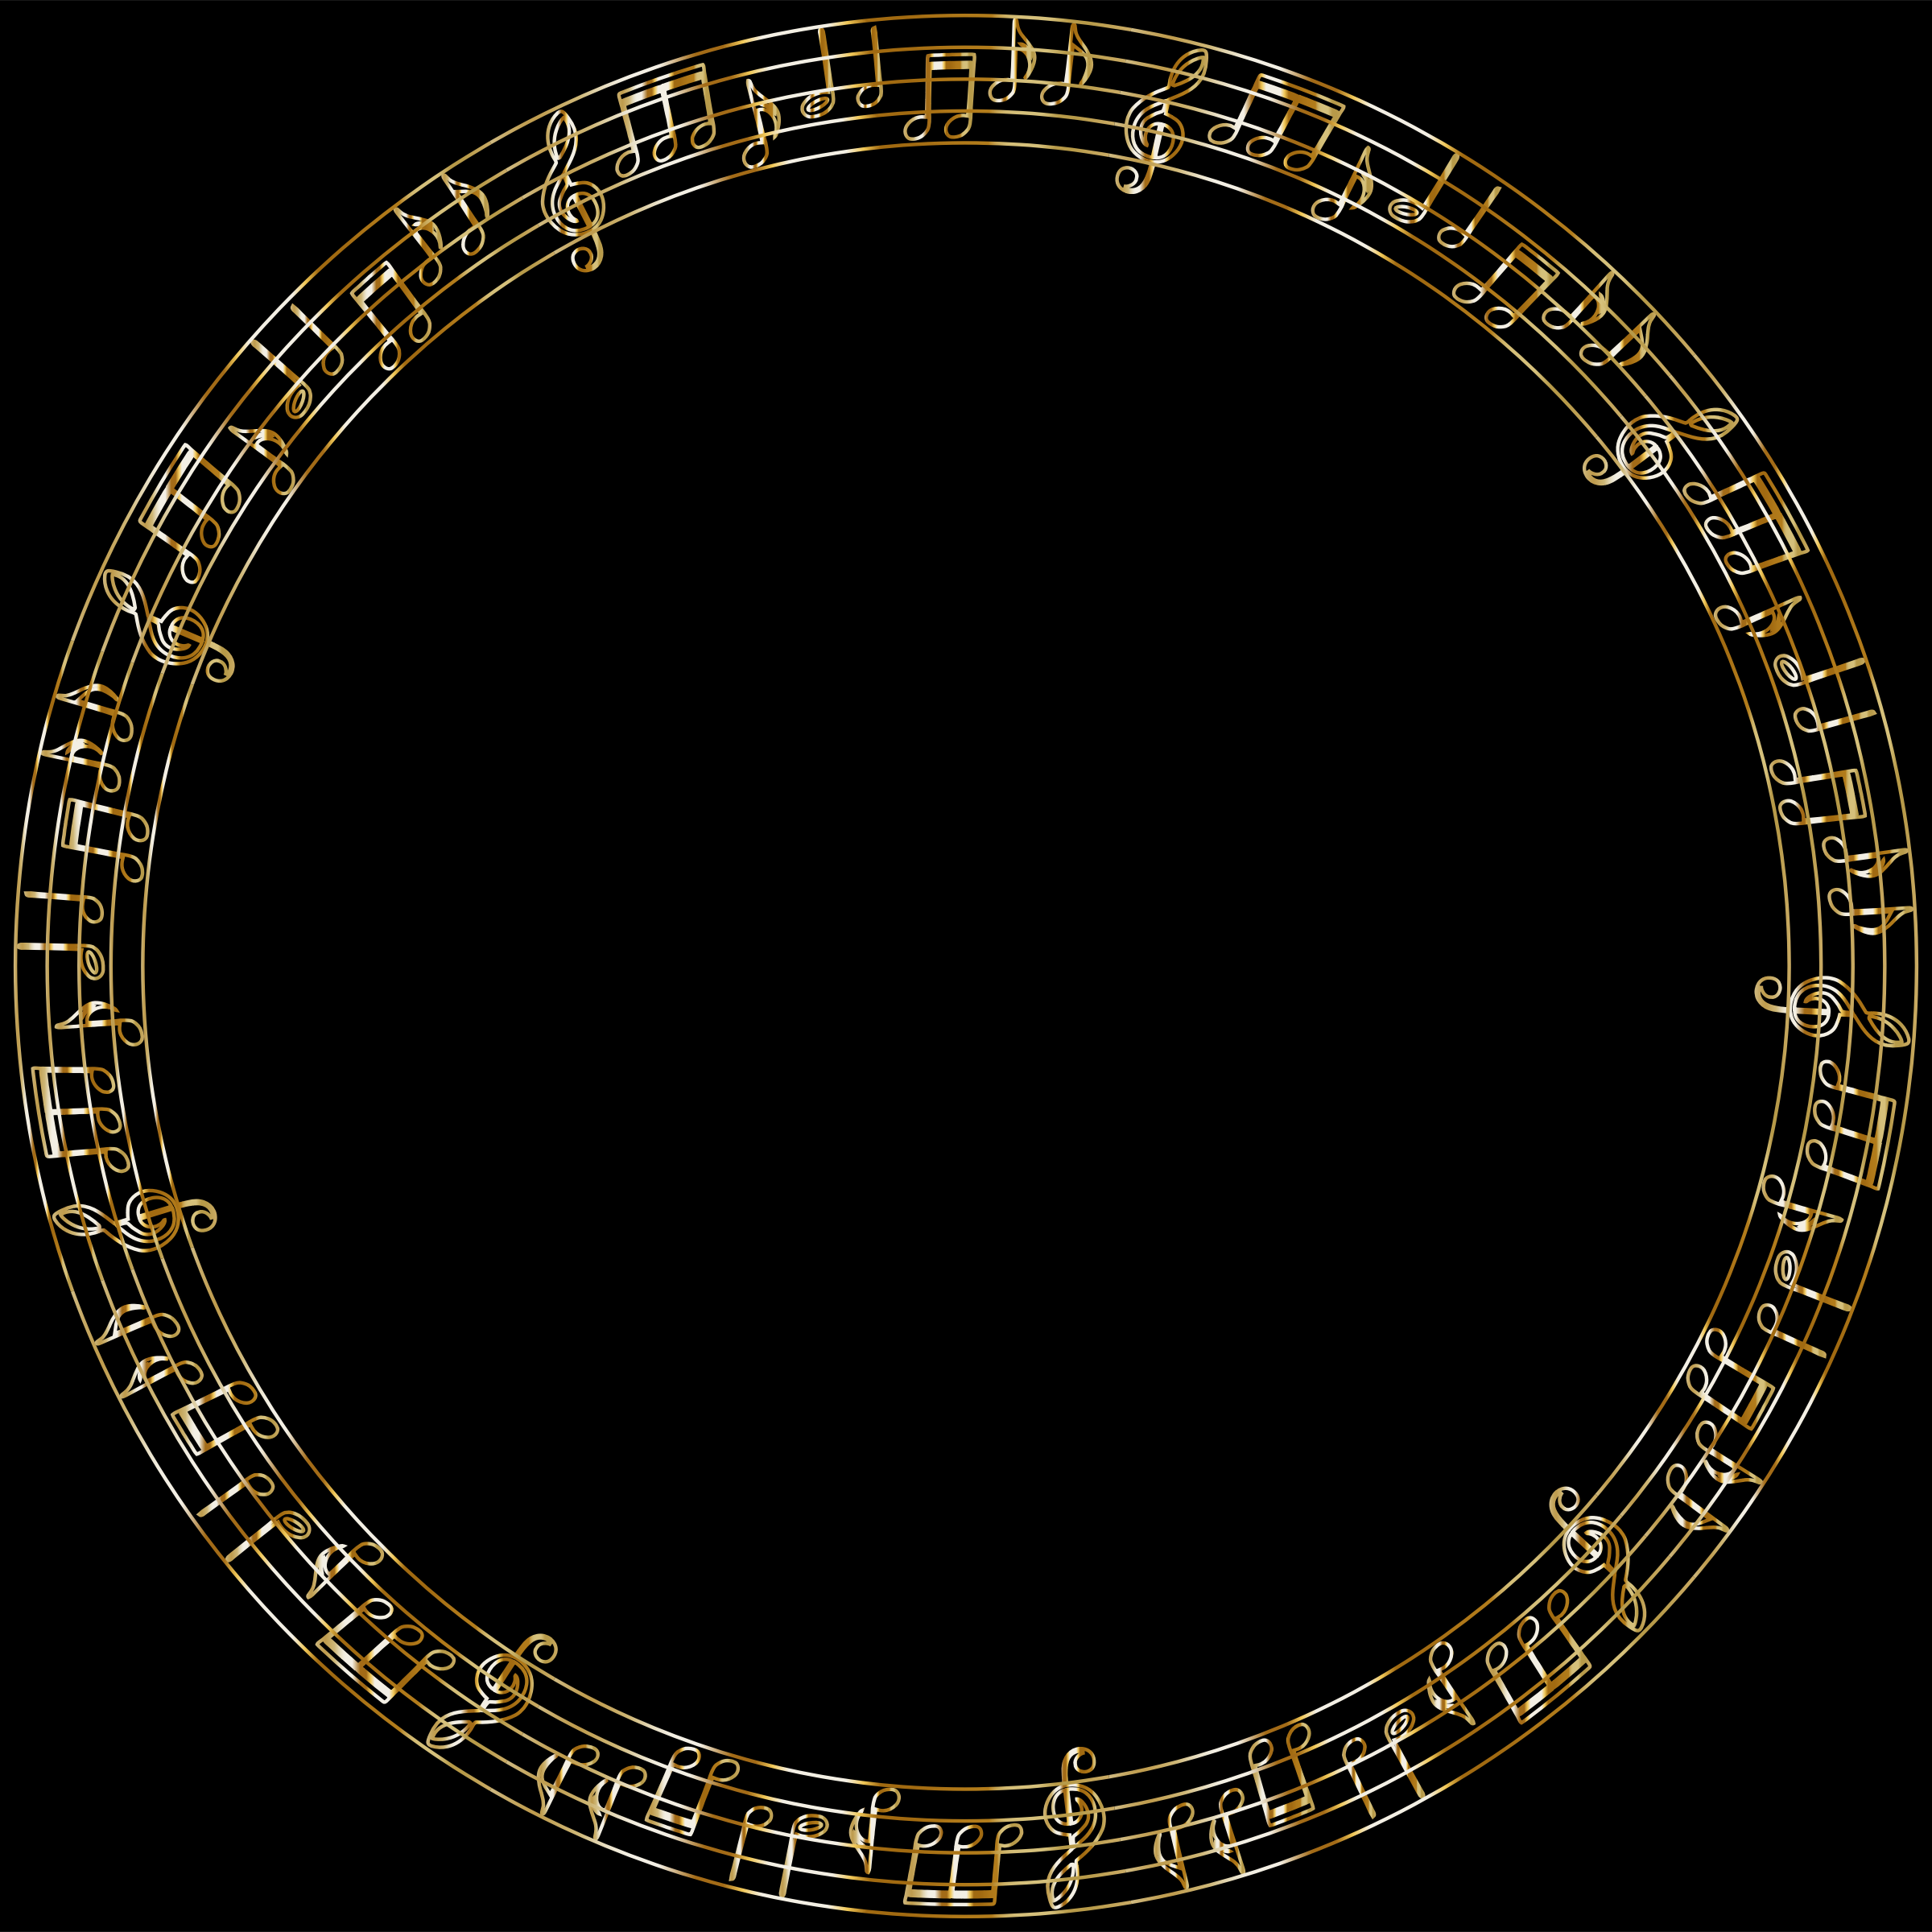 Golden Musical Circle by GDJ